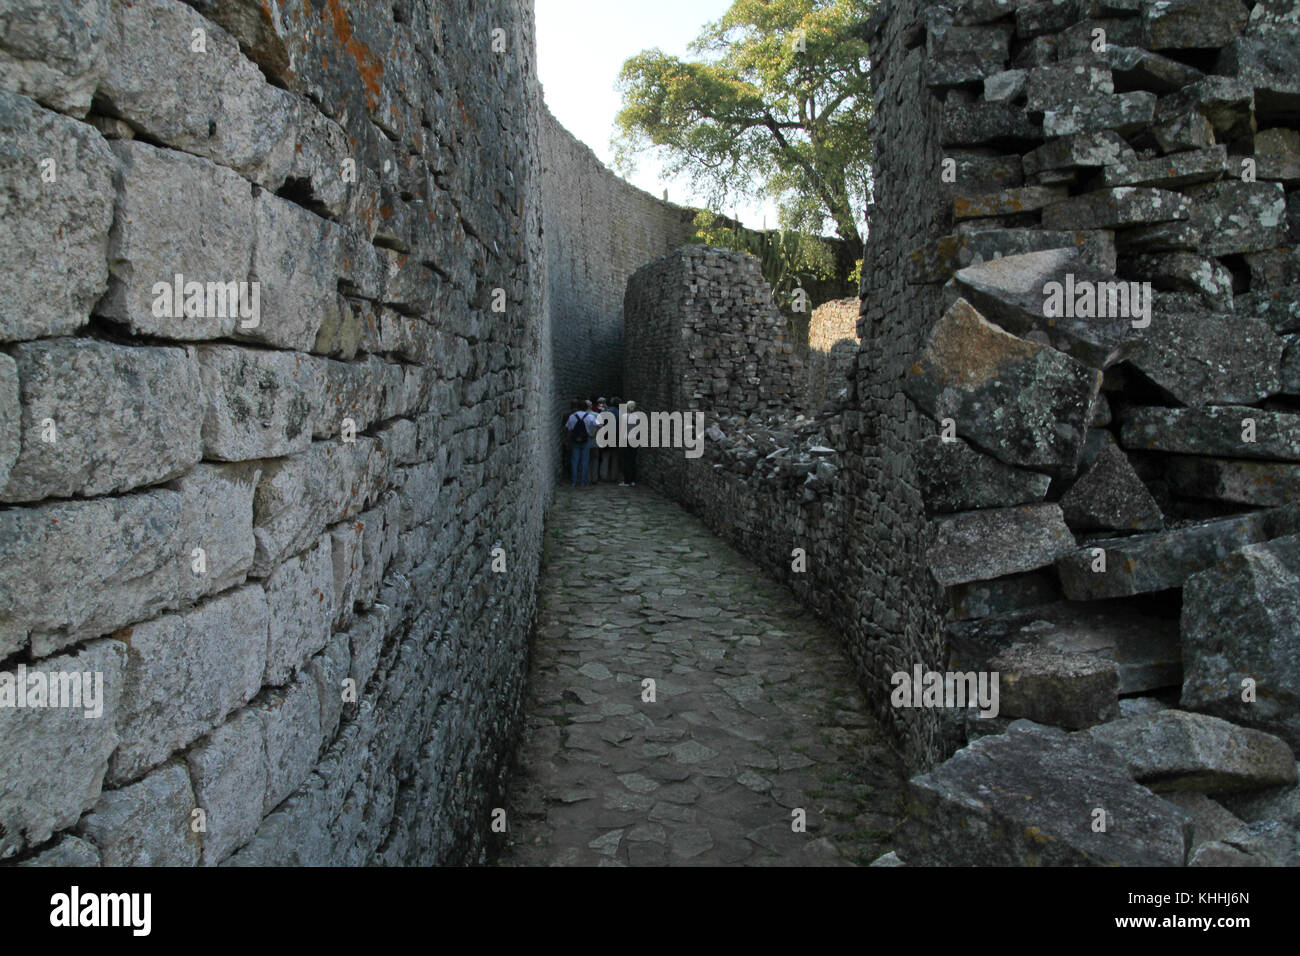 GREAT ZIMBAWE, ZIMBABWE -  16 October 2011: Tourist walk through the narrow path of the Great Enclosure which was - Stock Image